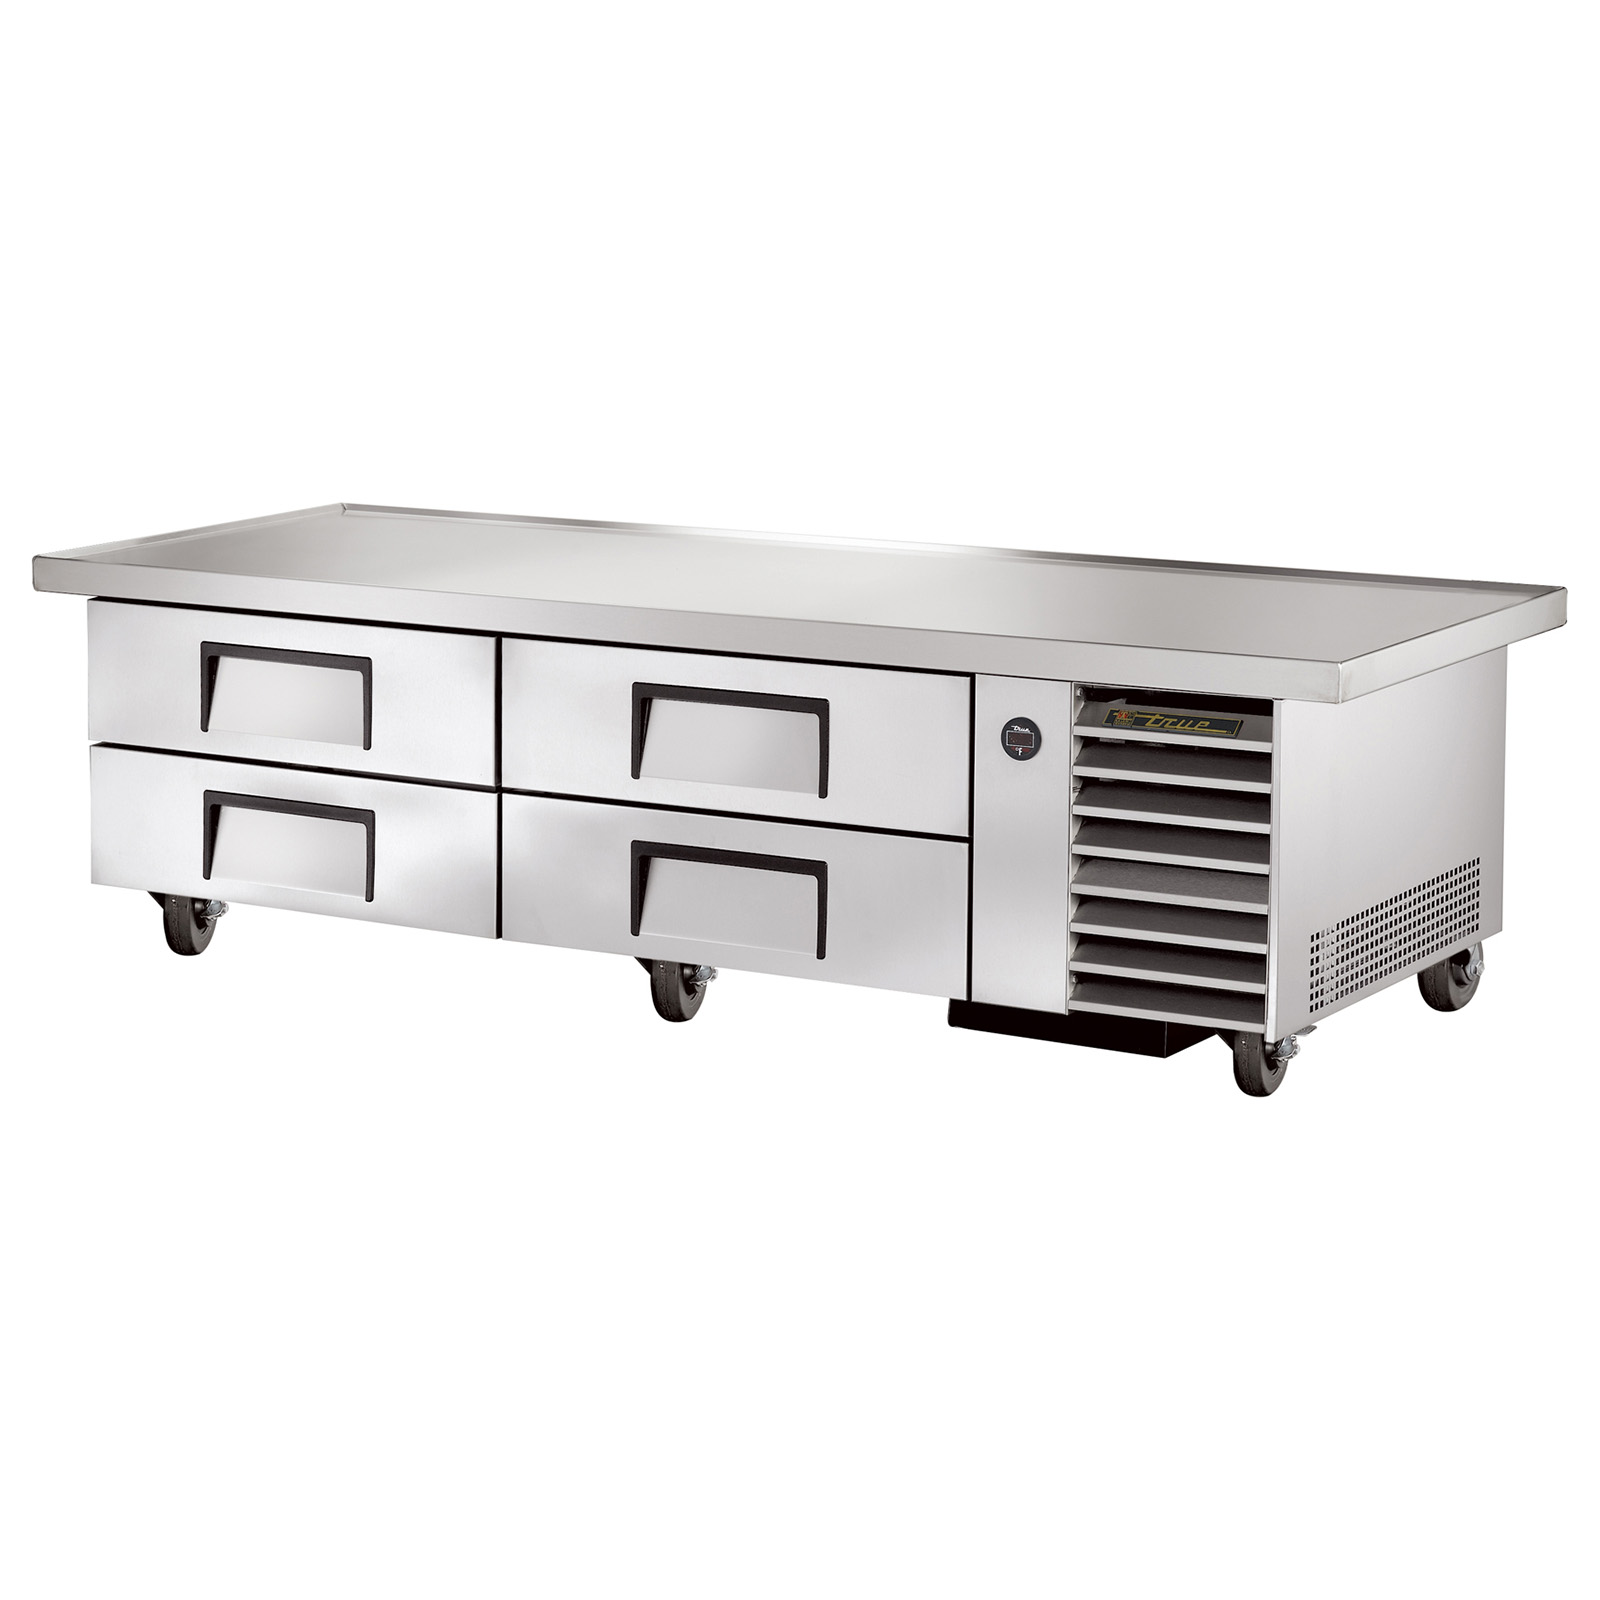 TRCB-79-86 True - Refrigerated Chef Base 79-1/4